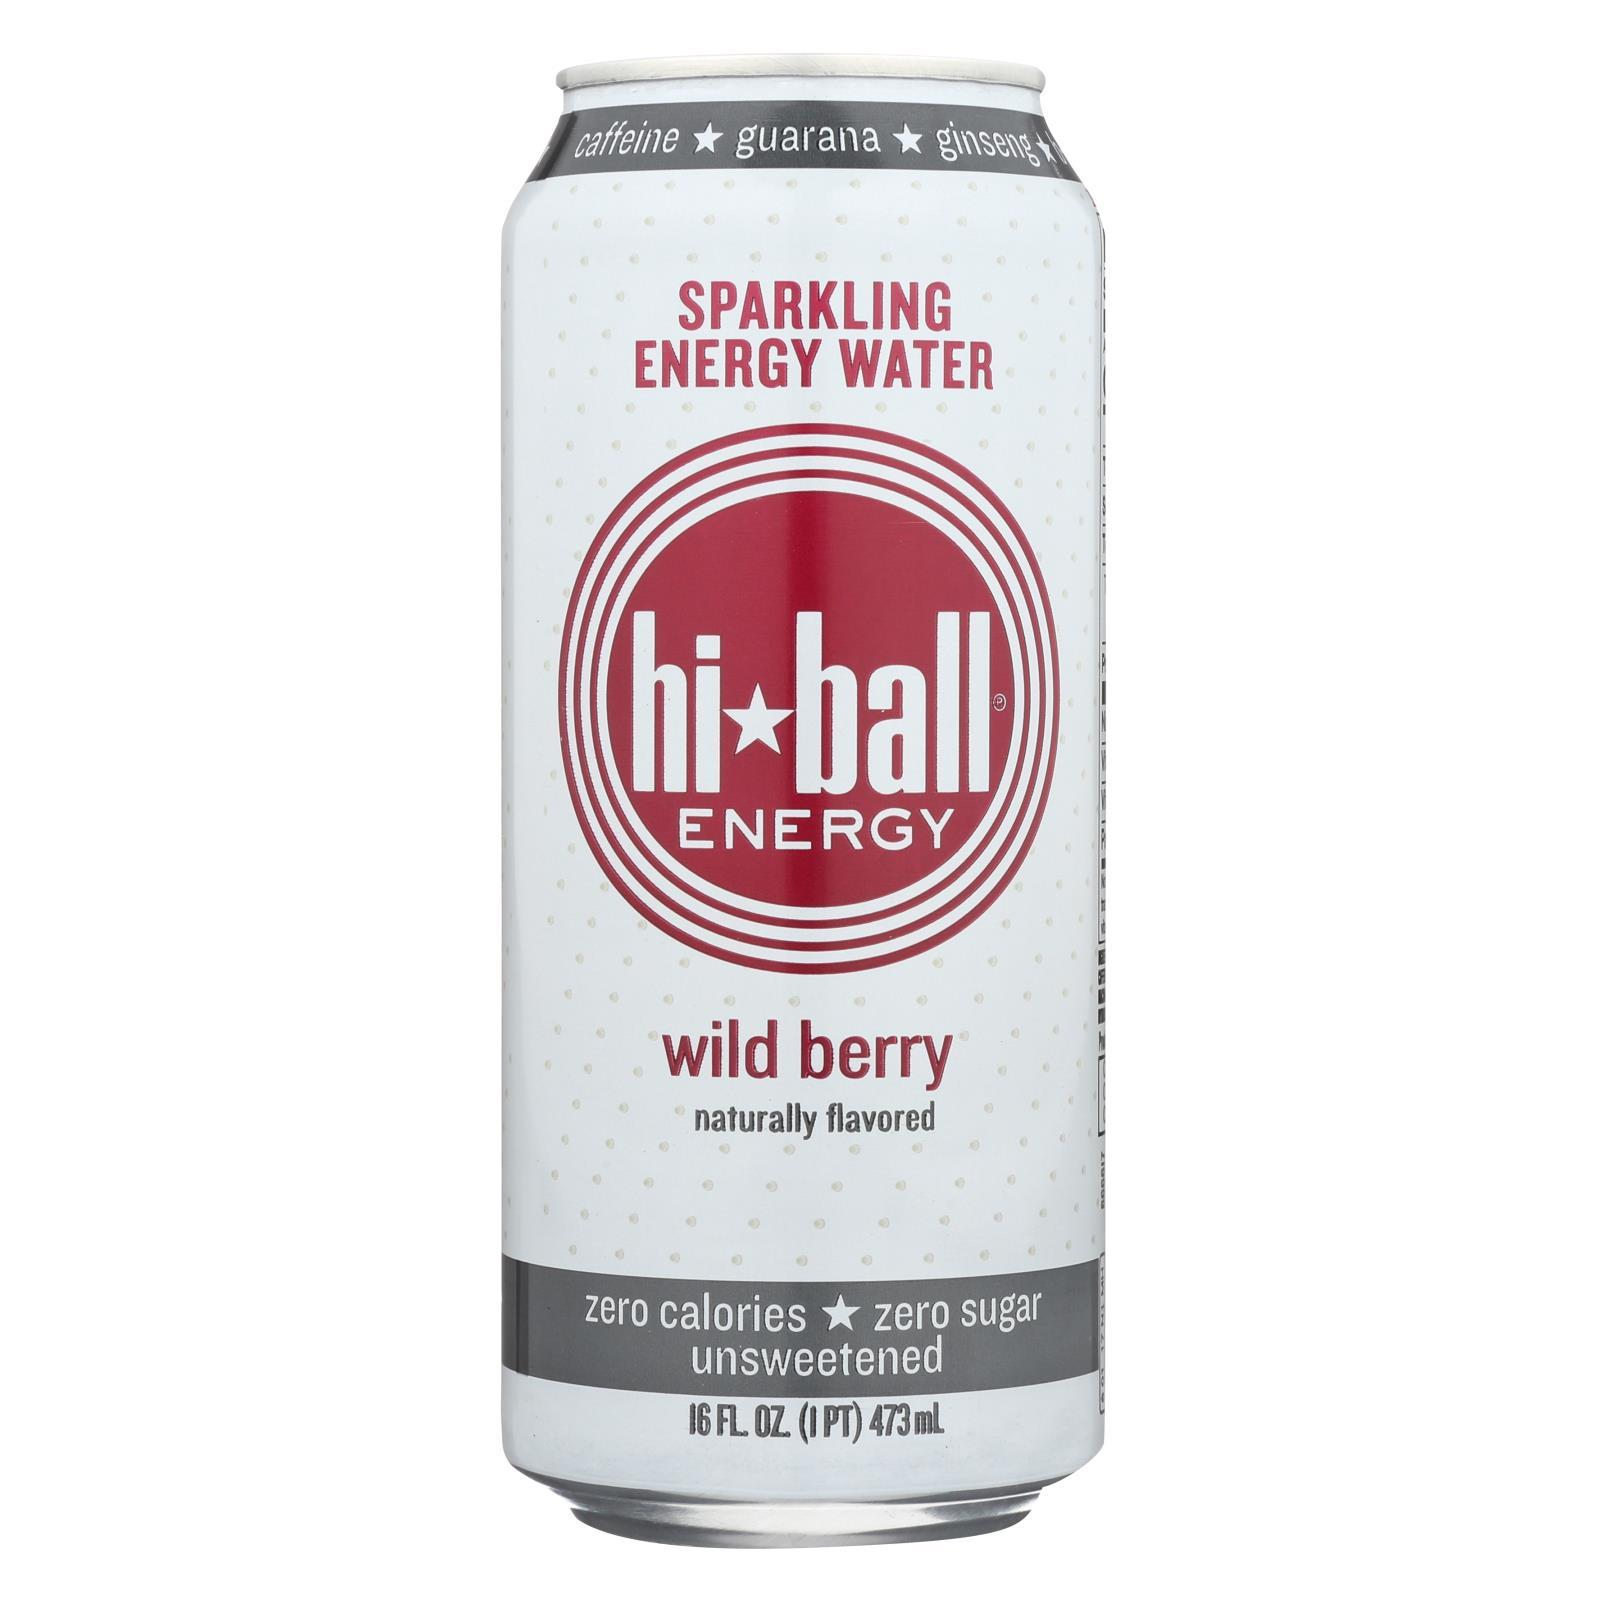 Hi Ball Energy Sparkling Energy Water - Wild Berry - Case Of 1 - 8-16 Fl Oz. - BeeGreen